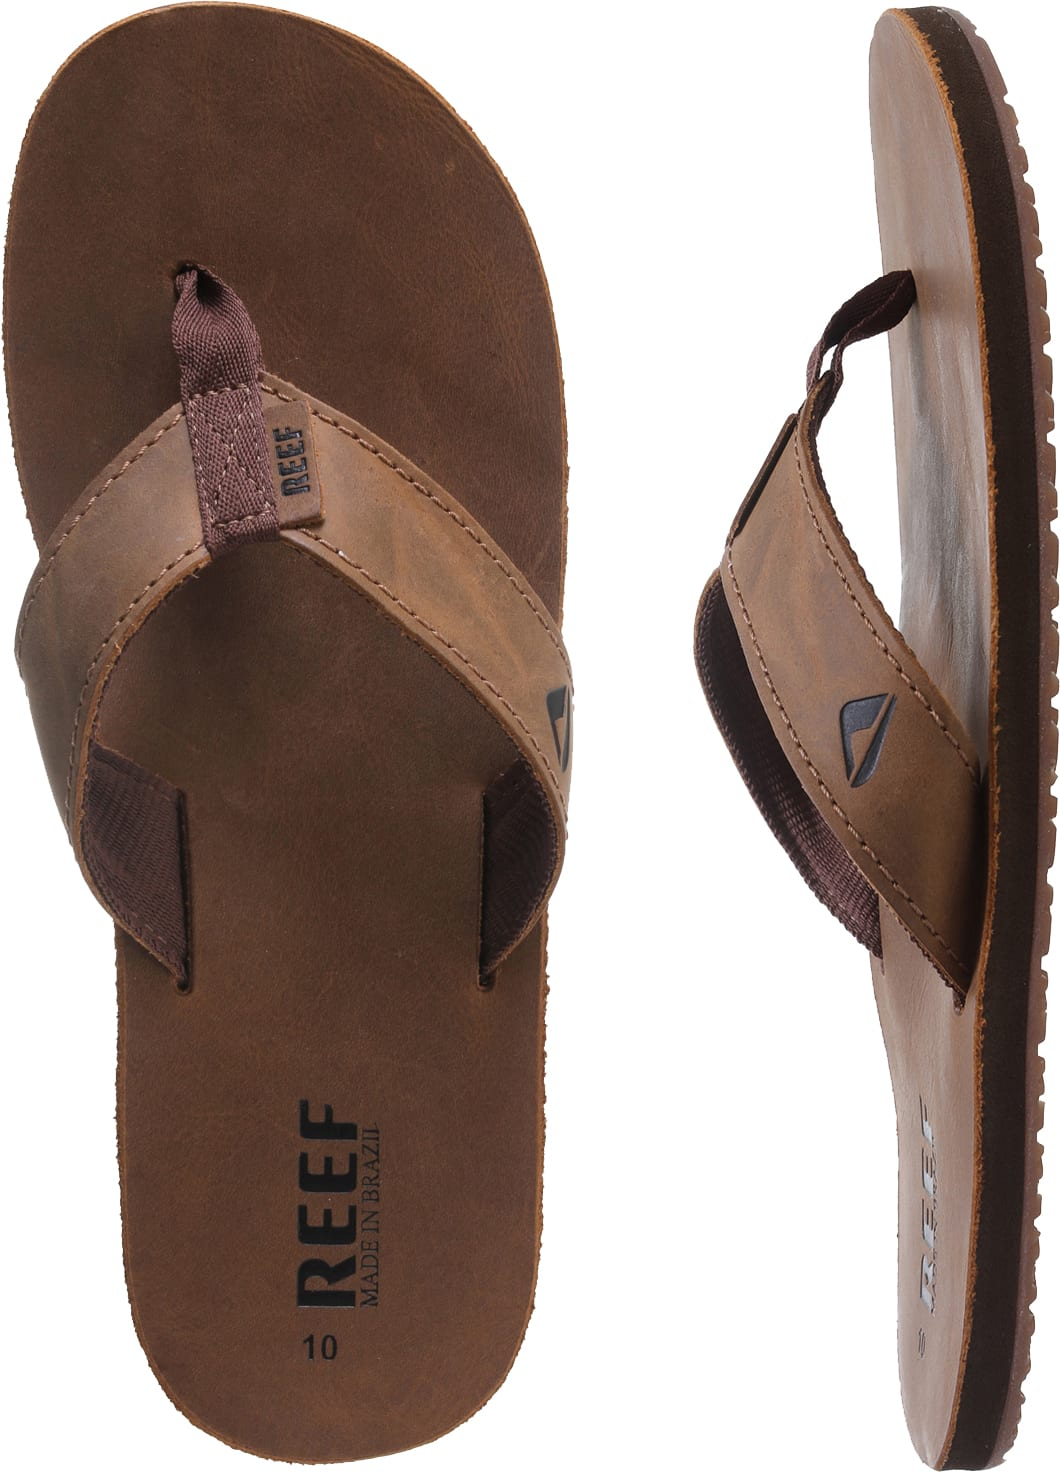 cf6c9f464f4a Reef Leather Smoothy Sandals - thumbnail 1